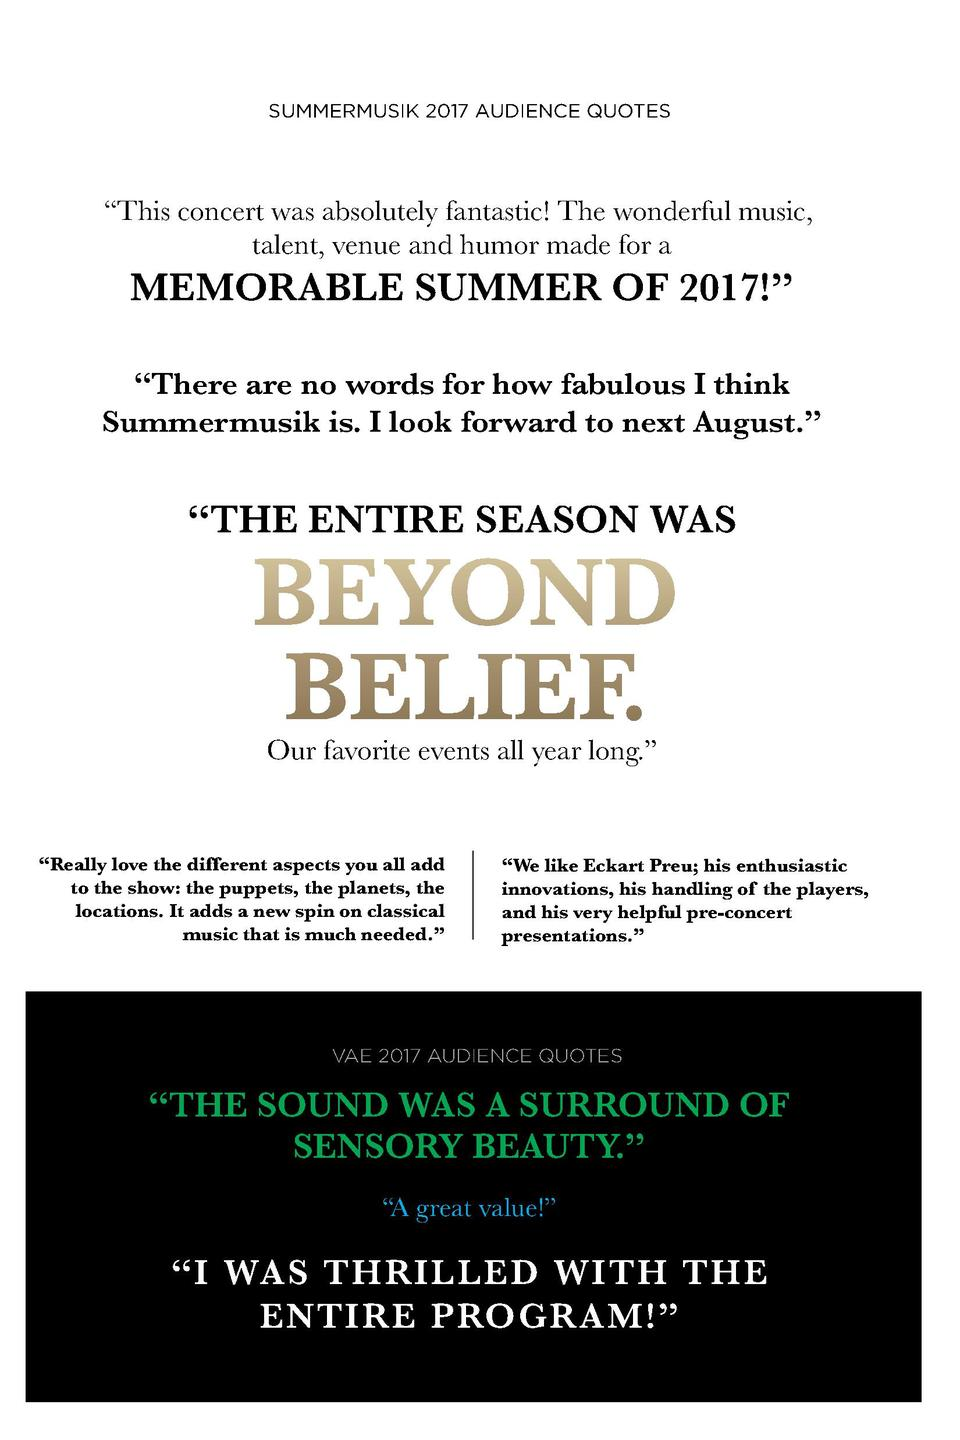 SUMMERMUSIK 2017 AUDIENCE QUOTES     This concert was absolutely fantastic  The wonderful music, talent, venue and humor m...